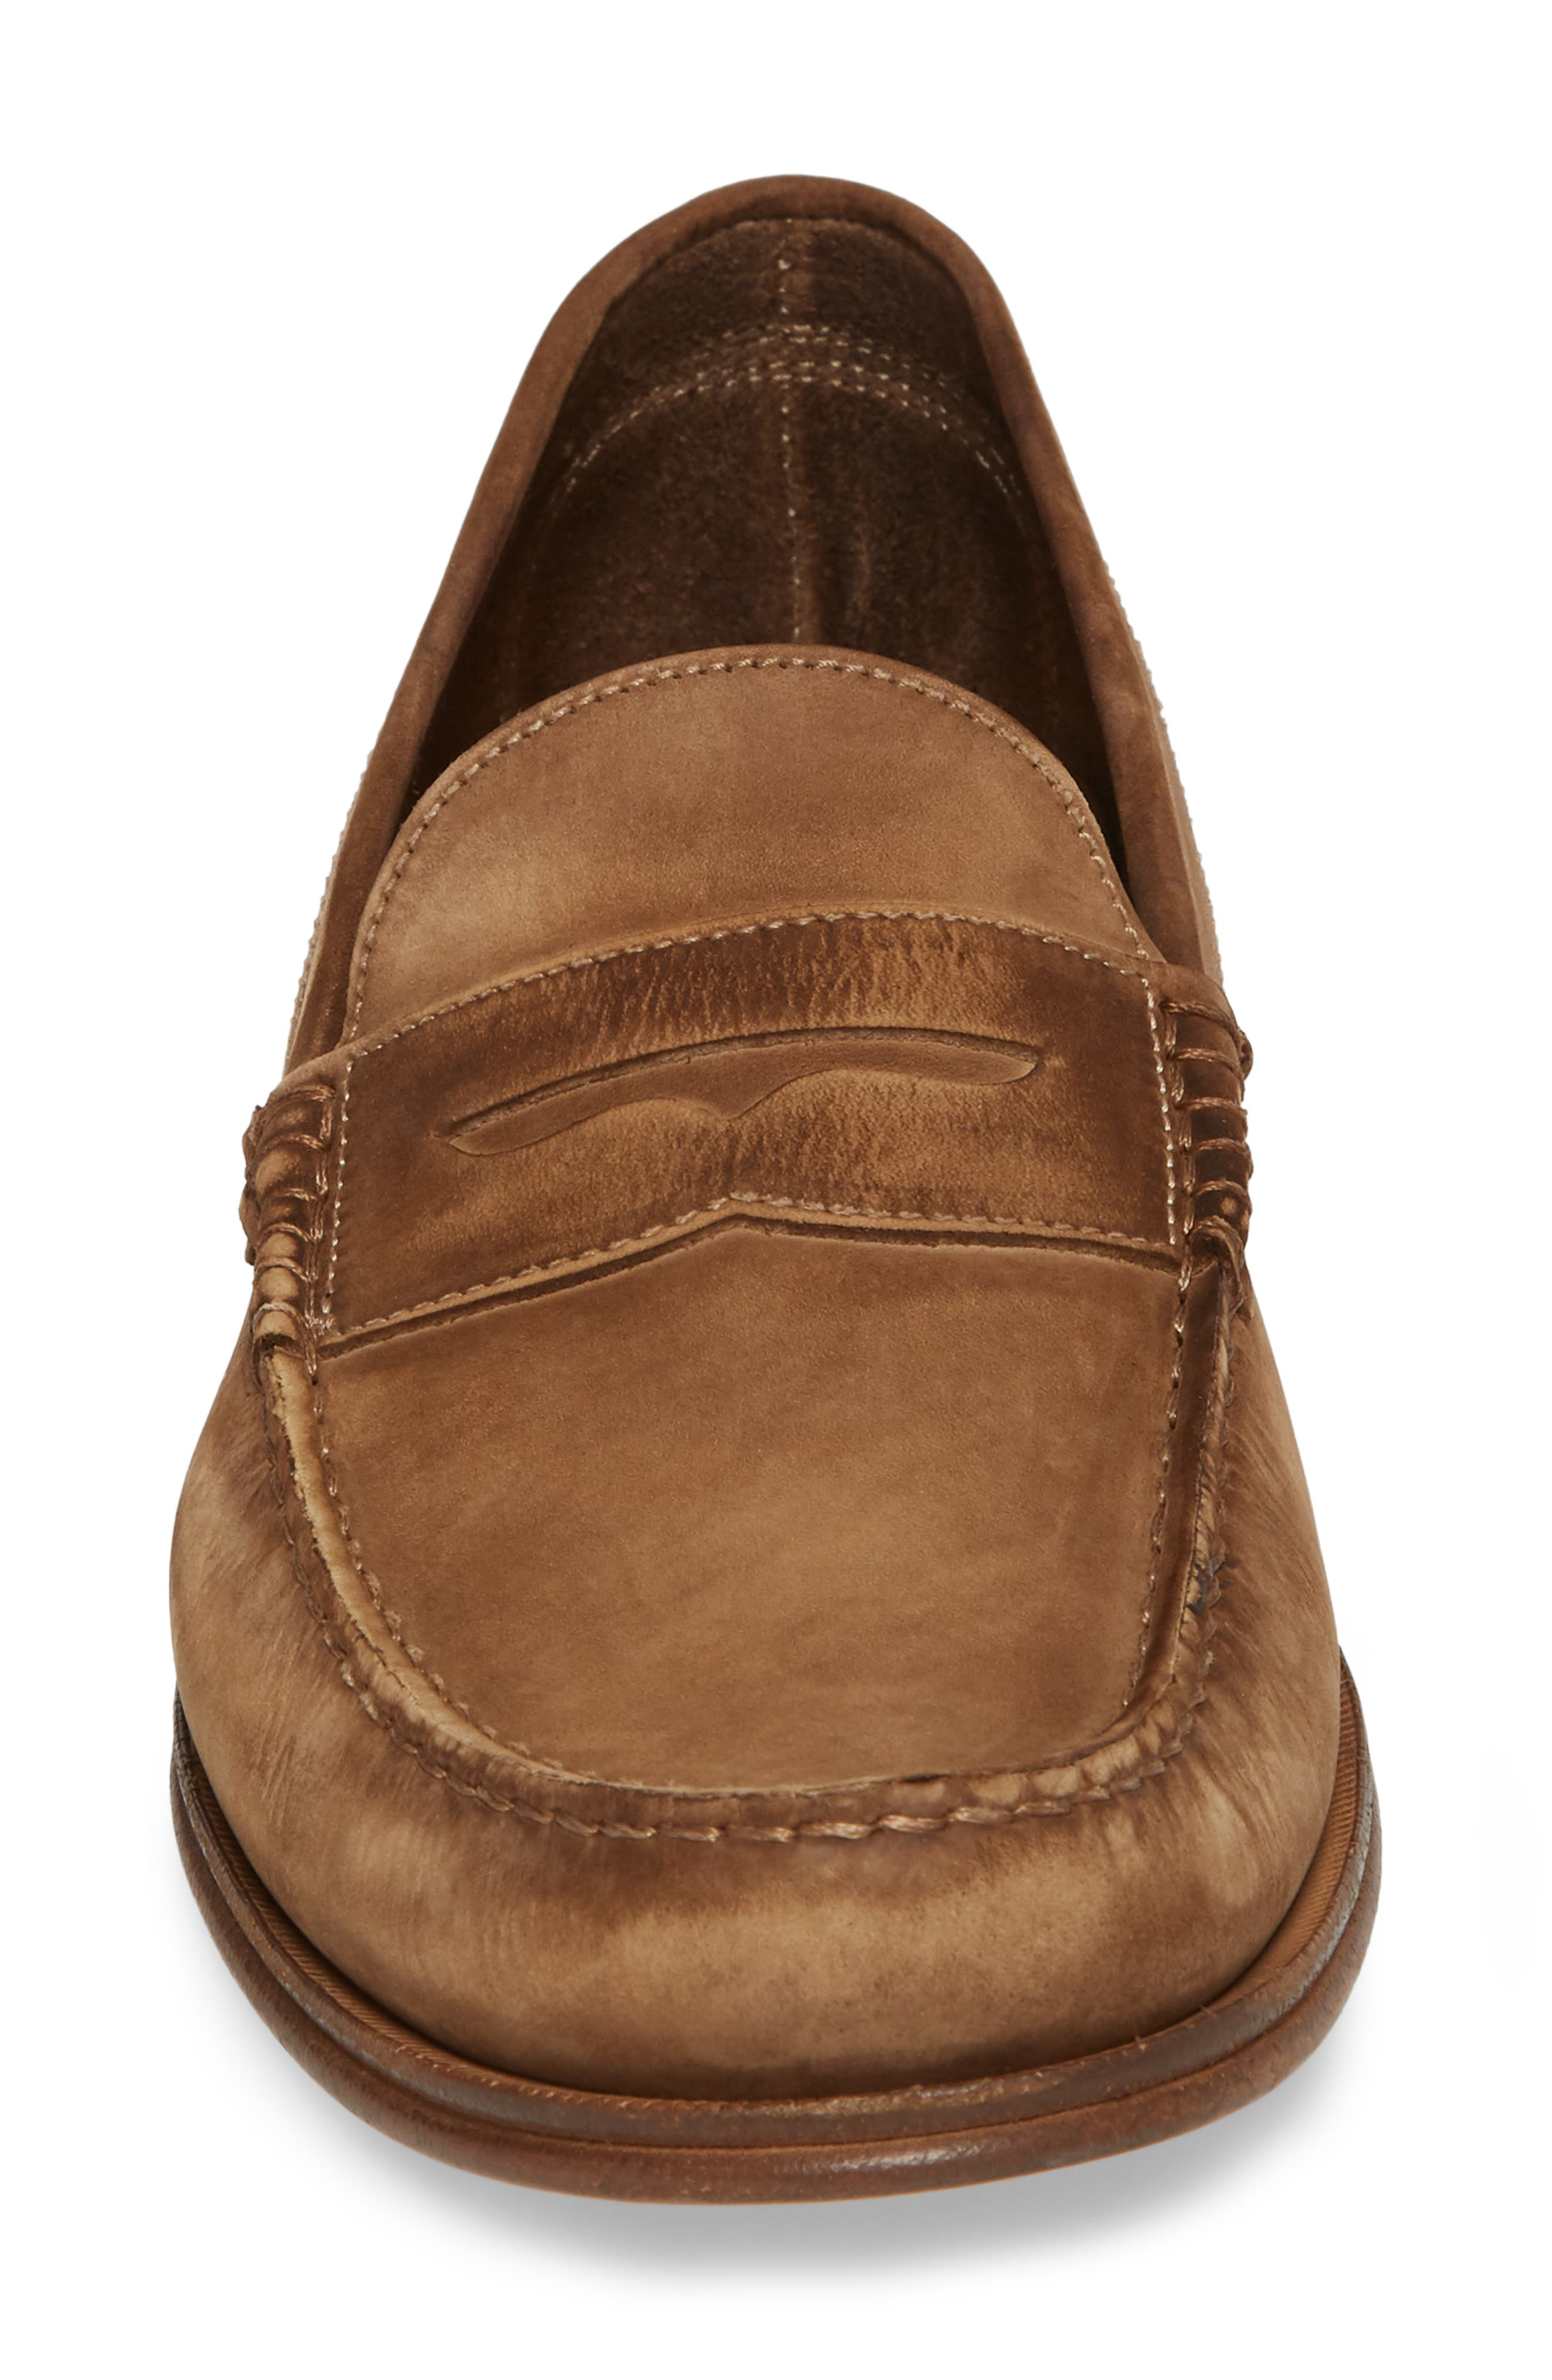 Nicola Penny Loafer,                             Alternate thumbnail 4, color,                             Chocolate Nubuck Leather